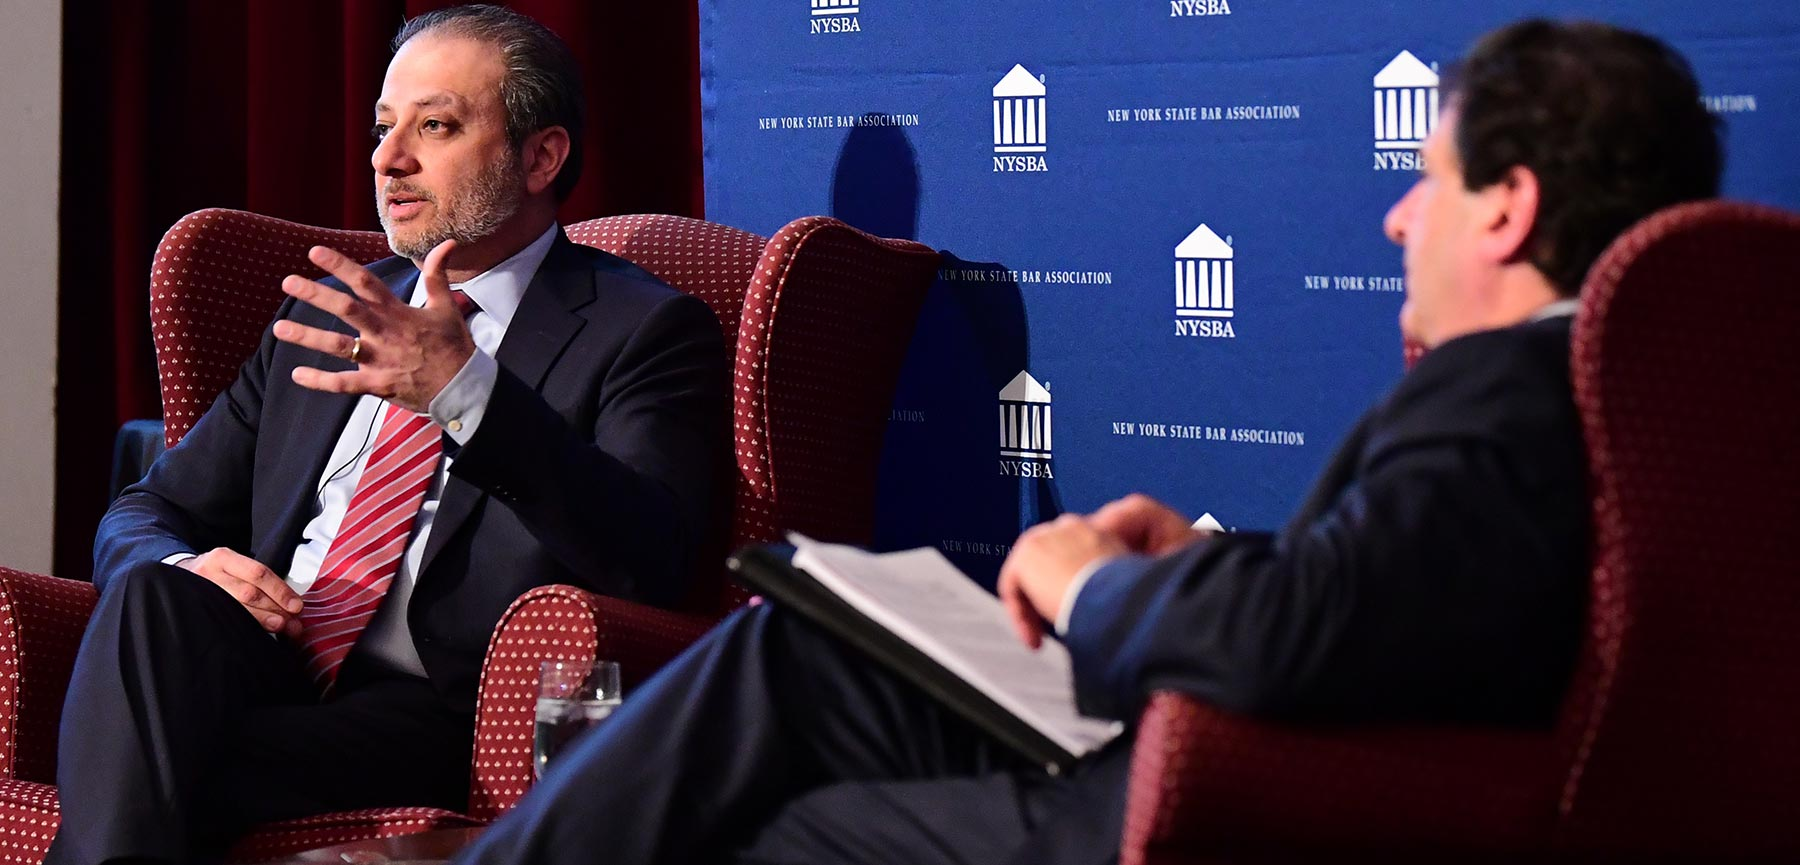 Dean Diller and Preet Bharara in Conversation